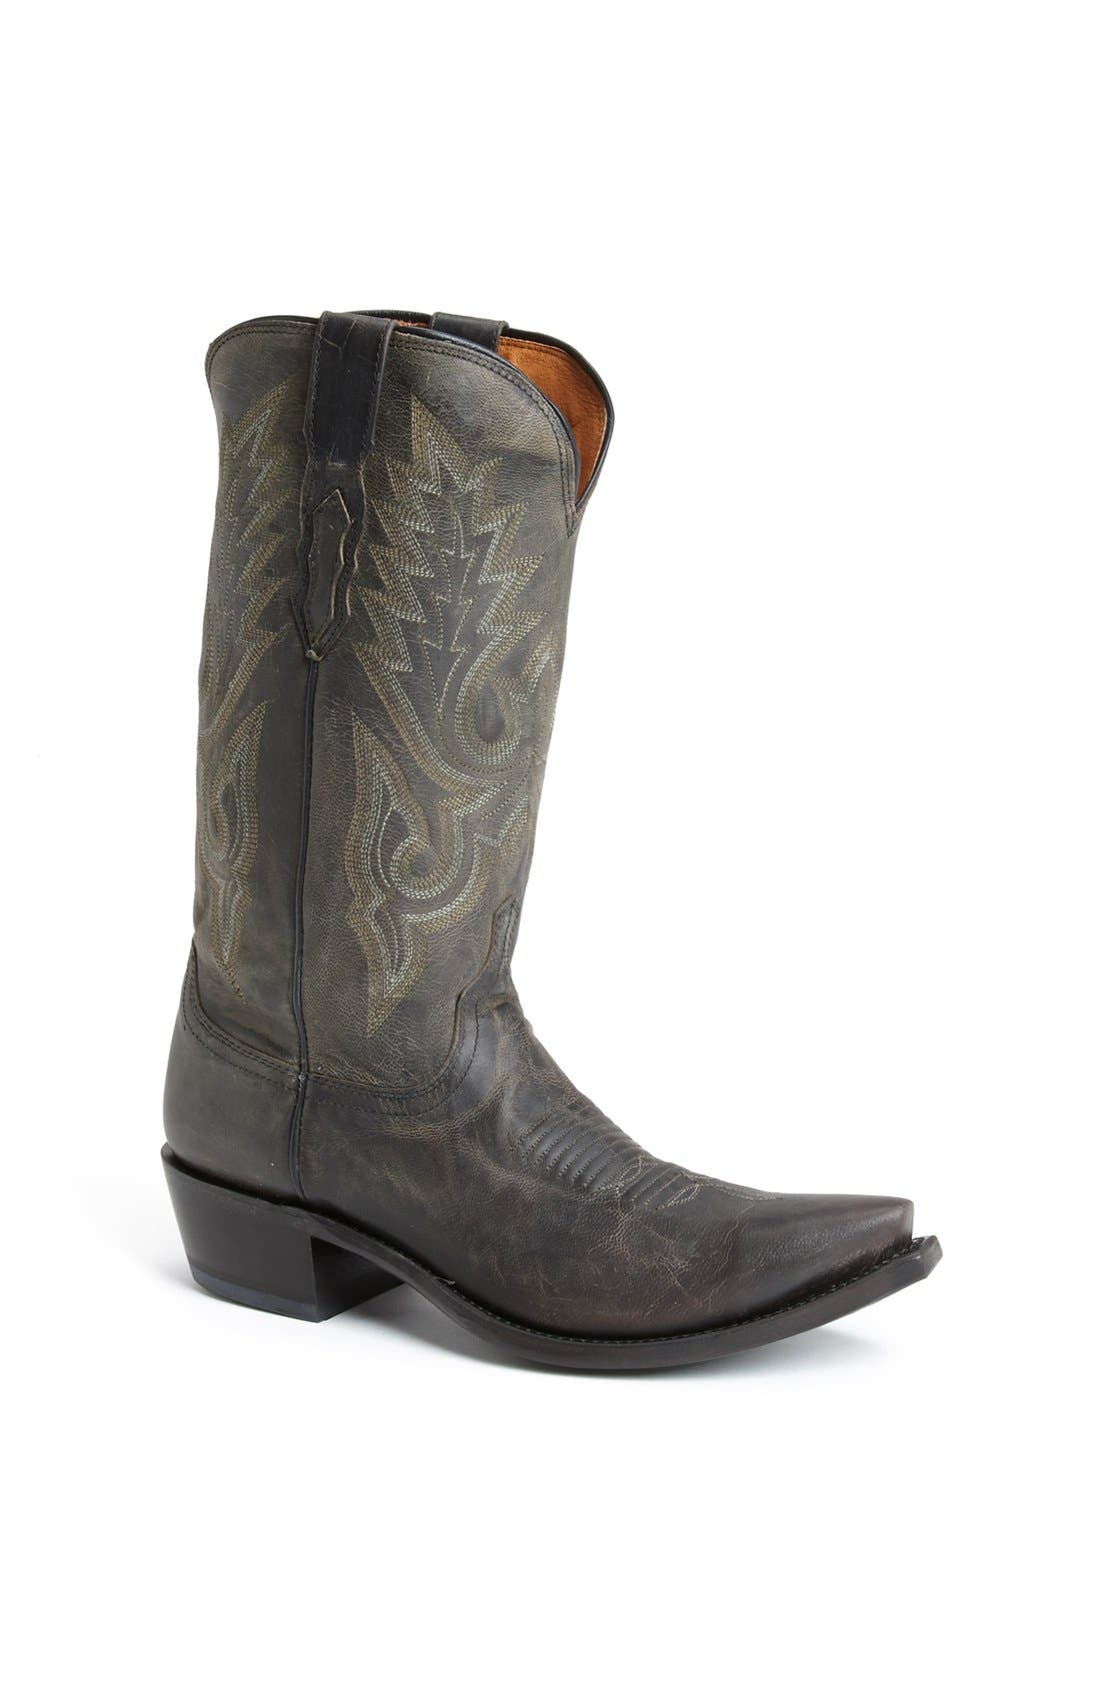 Alternate Image 1 Selected - Lucchese 'Gill' Boot